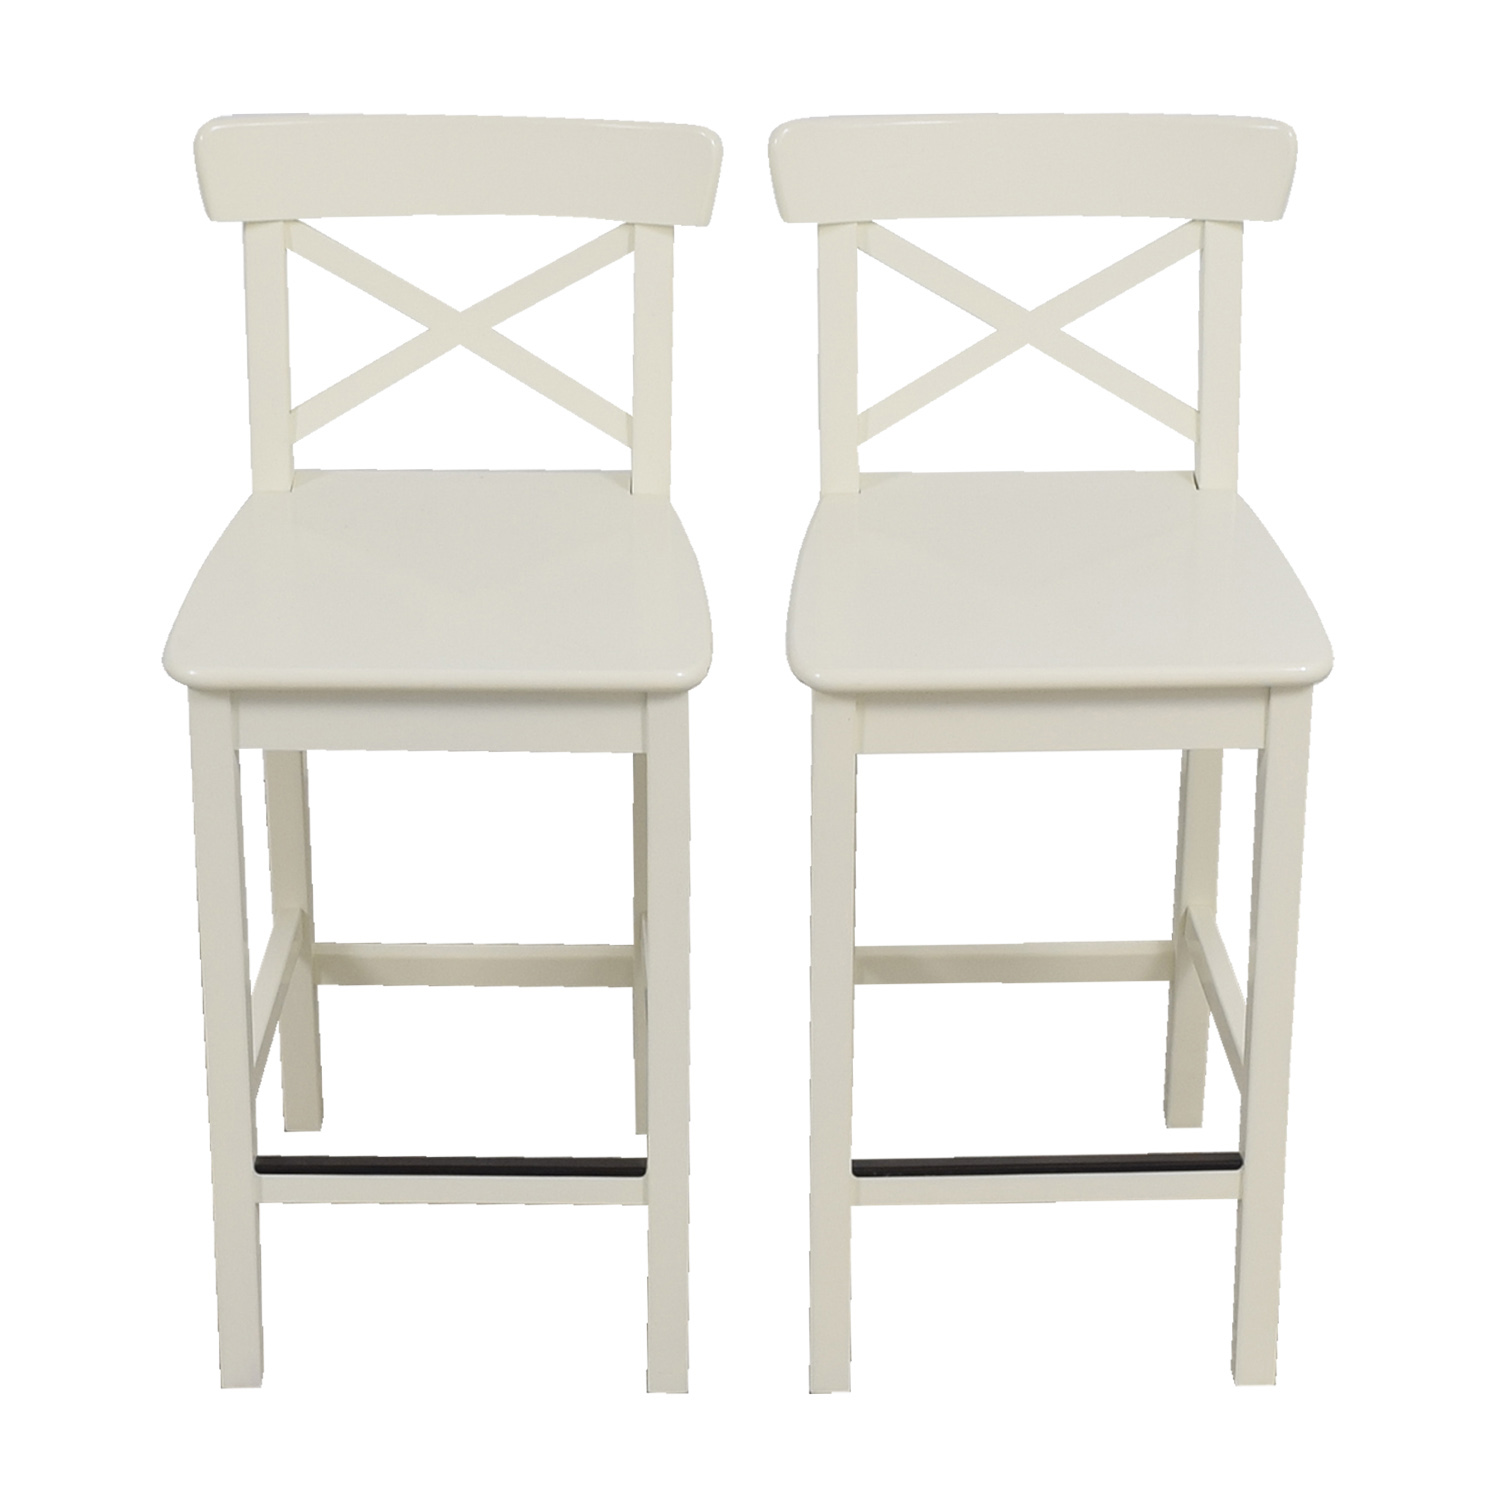 63 Off Ikea Ikea White Bar Stools Chairs